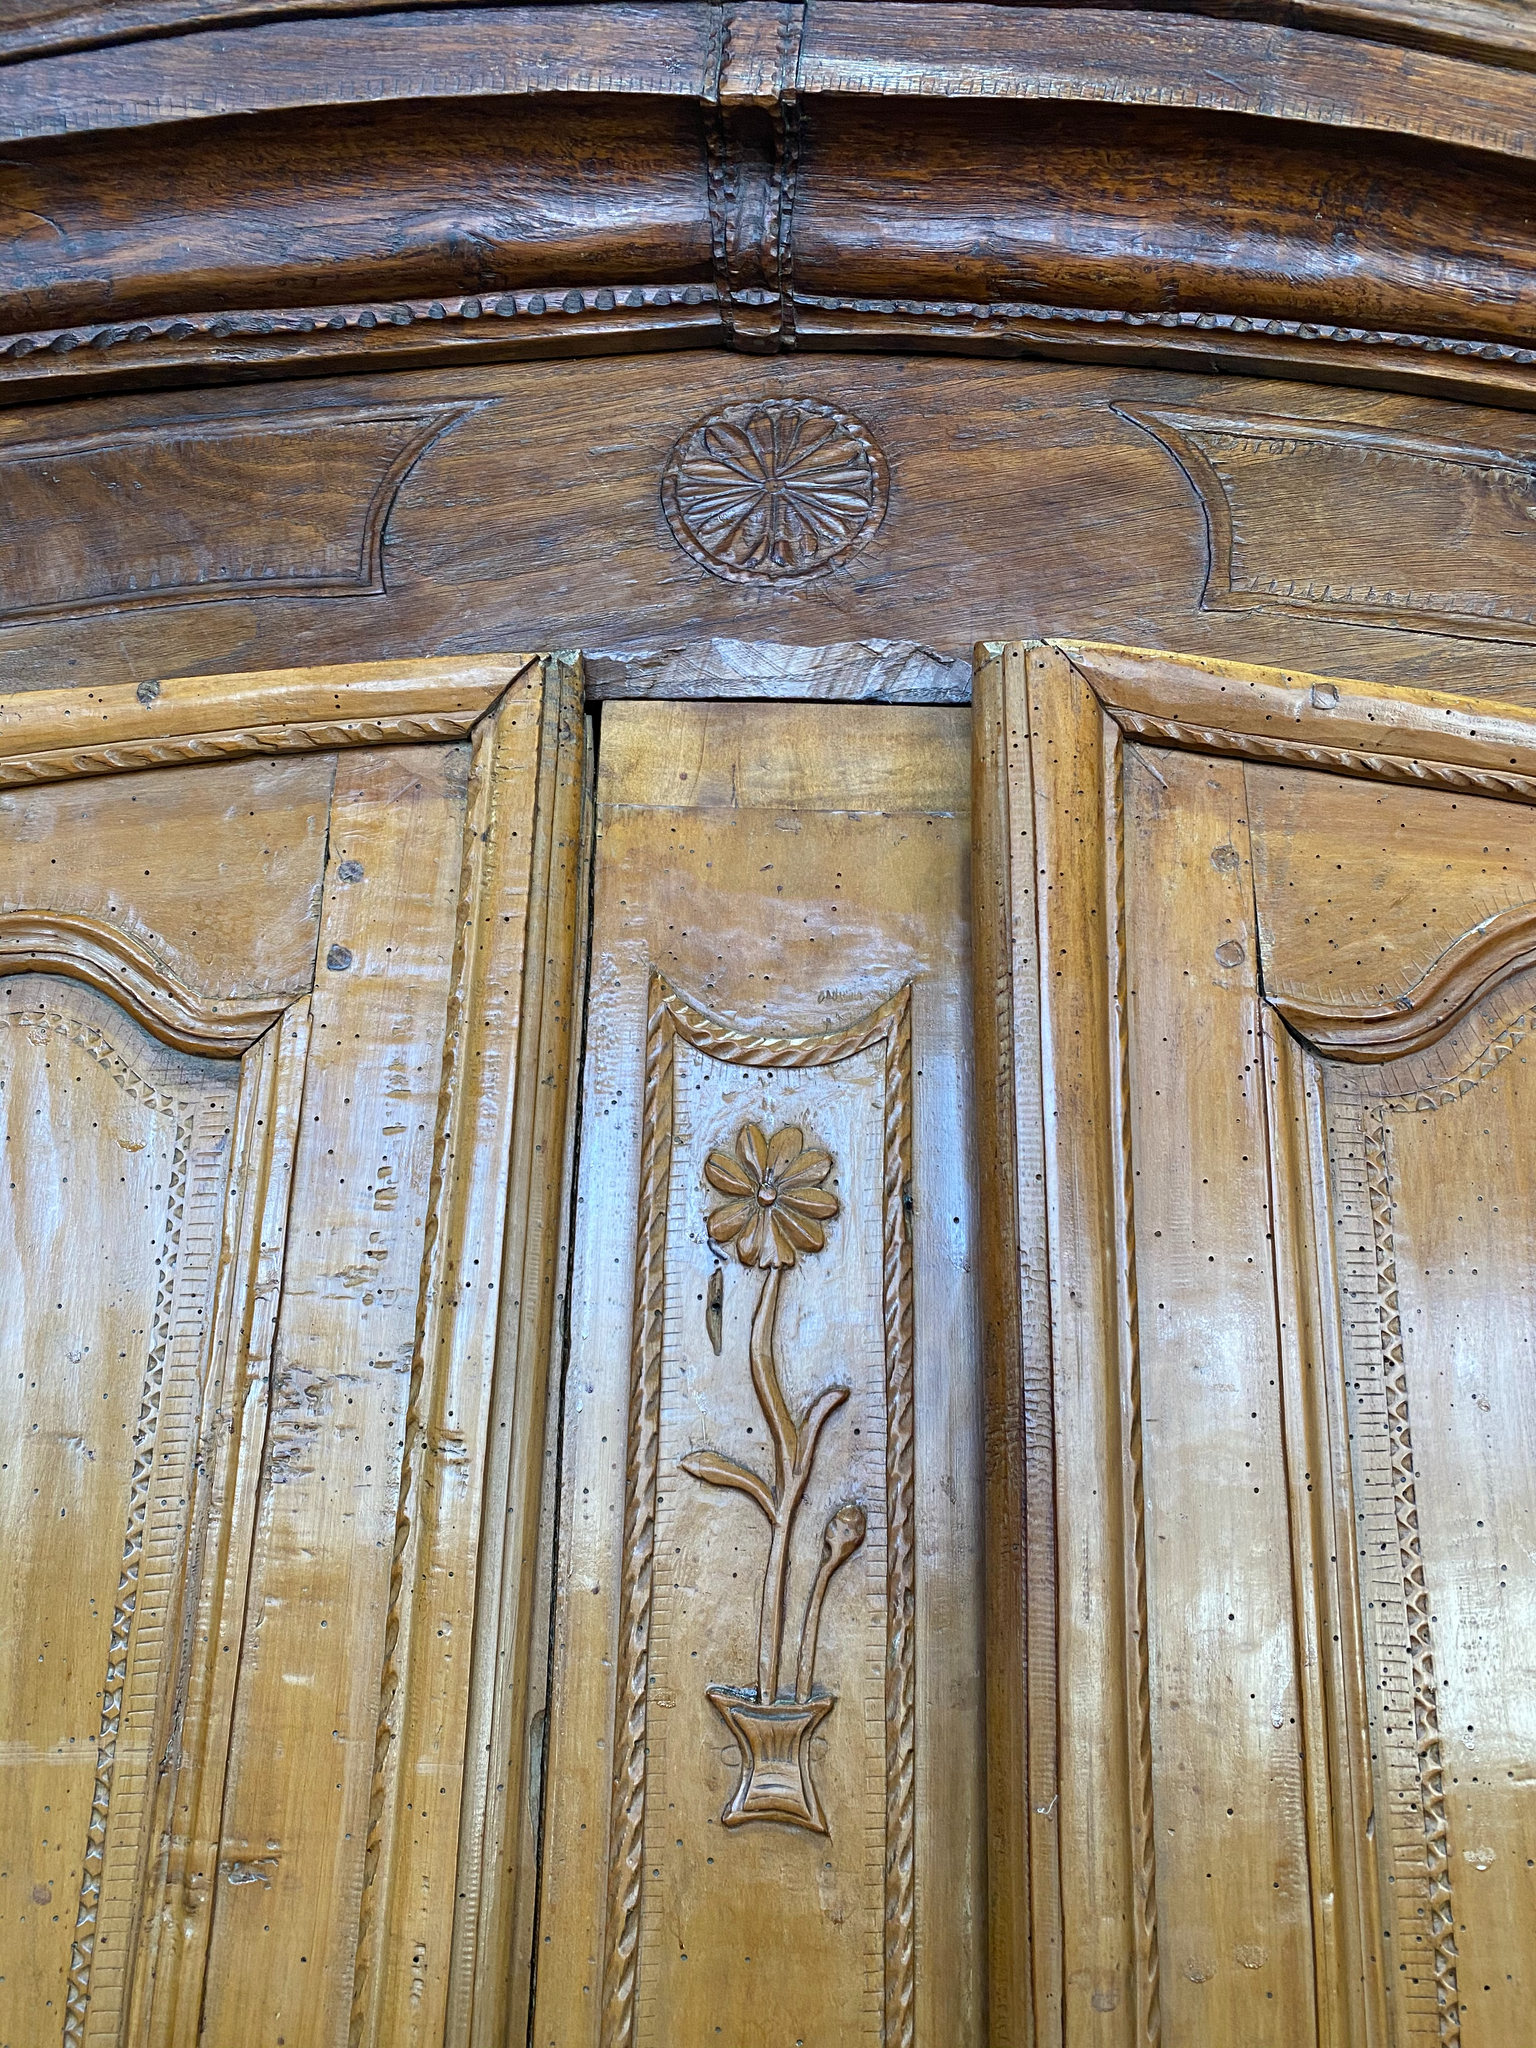 Impressive 18th Century Armoire with Floral Carvings